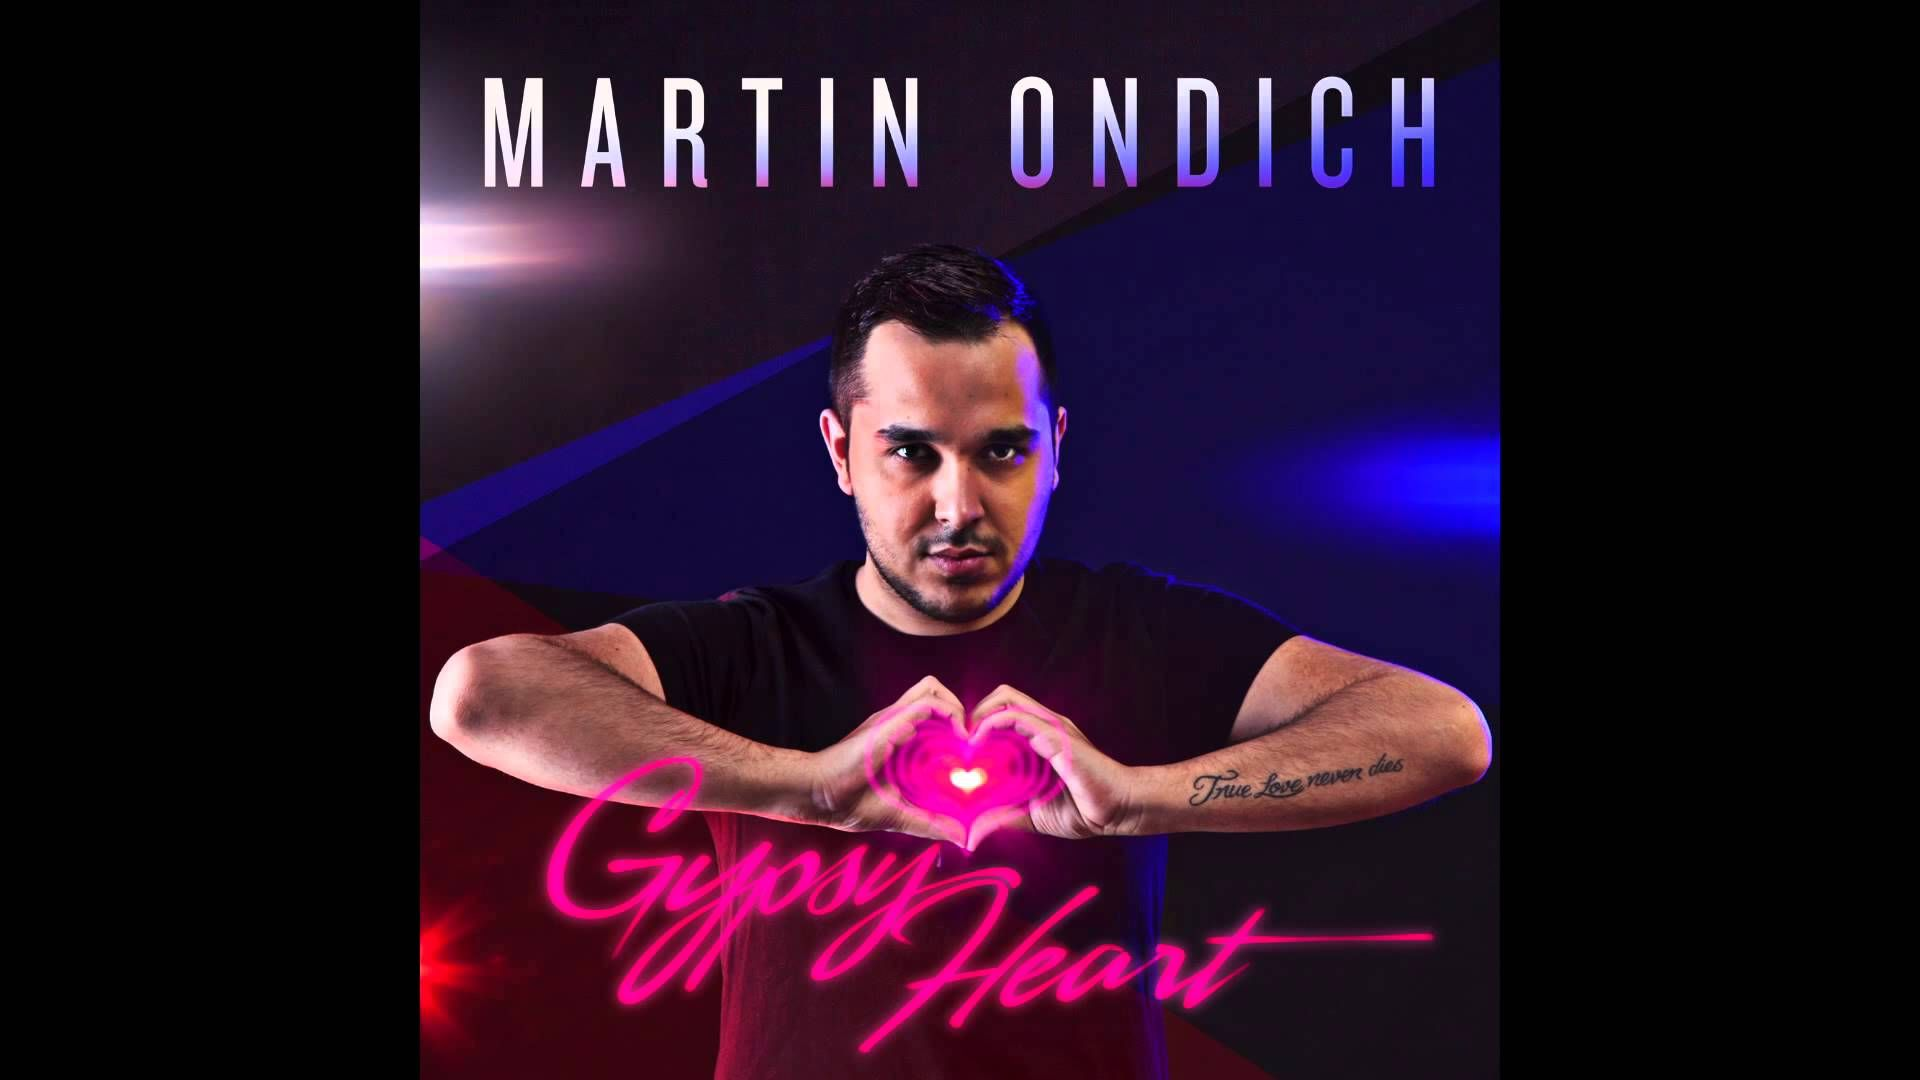 Gypsy Heart Single preview Martin Ondich